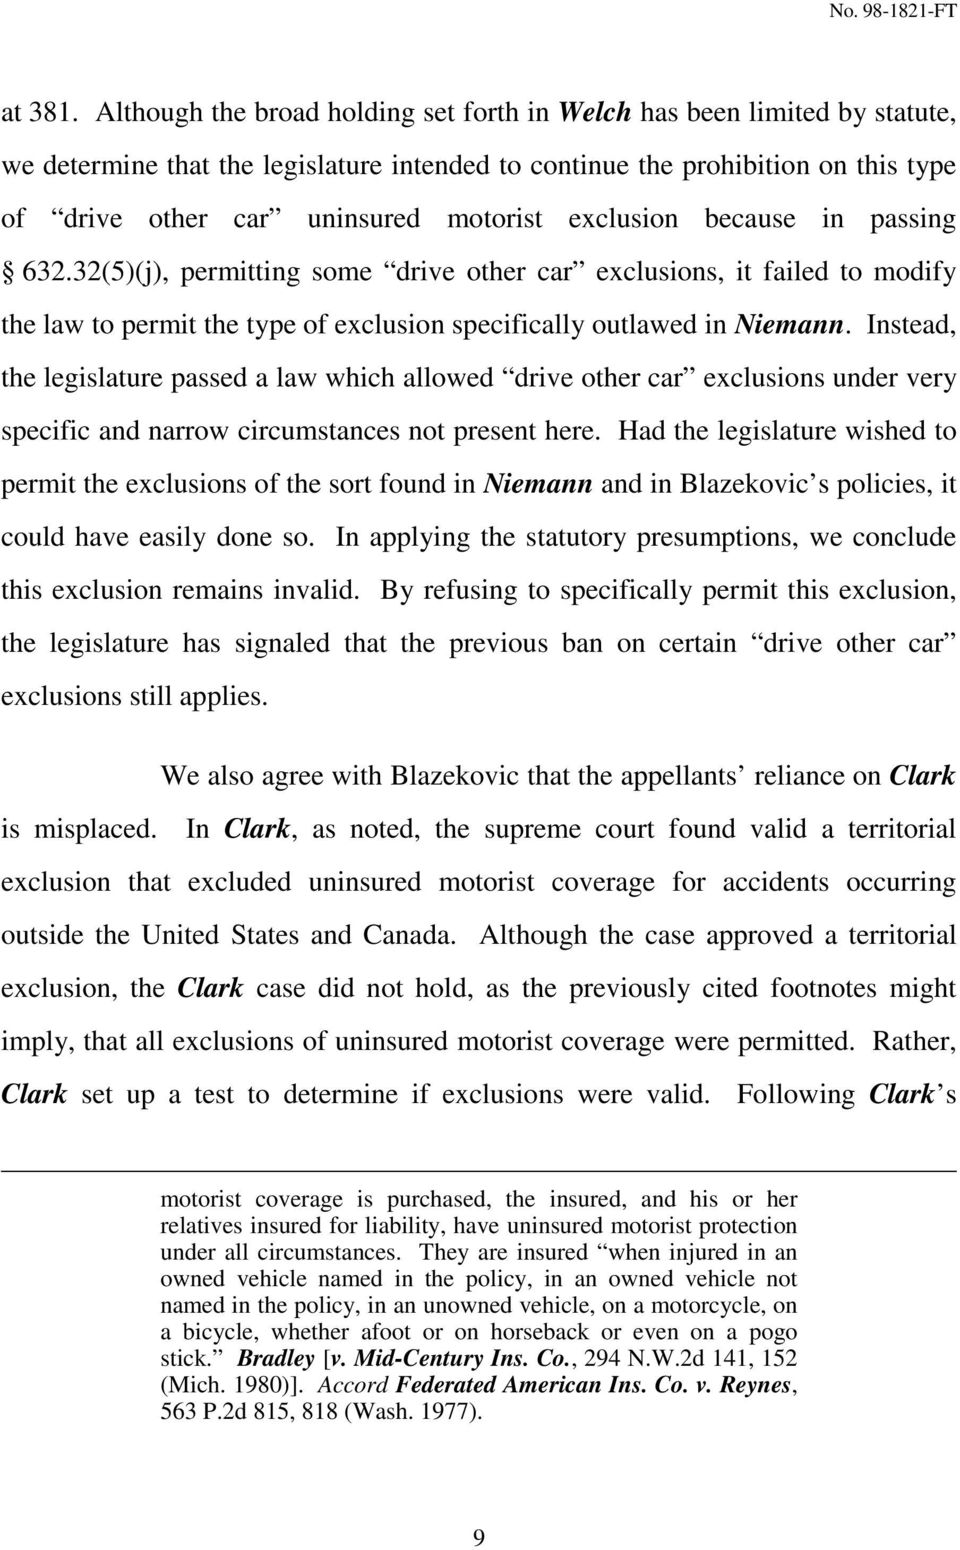 exclusion because in passing 632.32(5)(j), permitting some drive other car exclusions, it failed to modify the law to permit the type of exclusion specifically outlawed in Niemann.